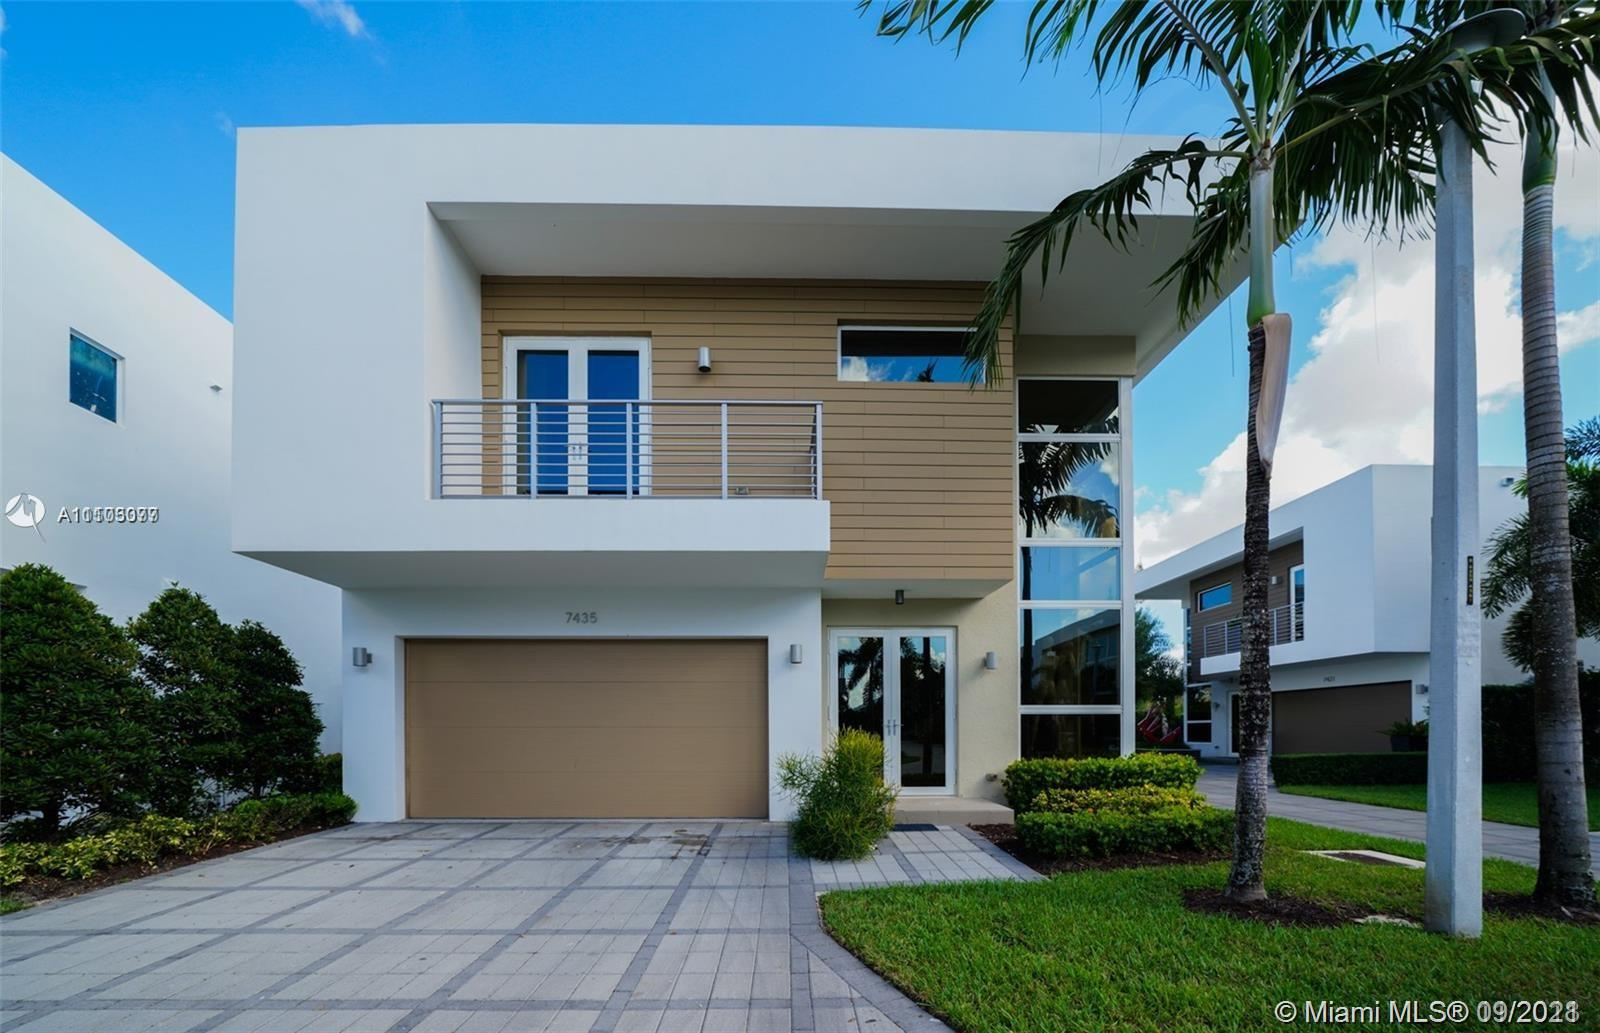 Doral Commons Residential - 7435 NW 97th Ct, Doral, FL 33178